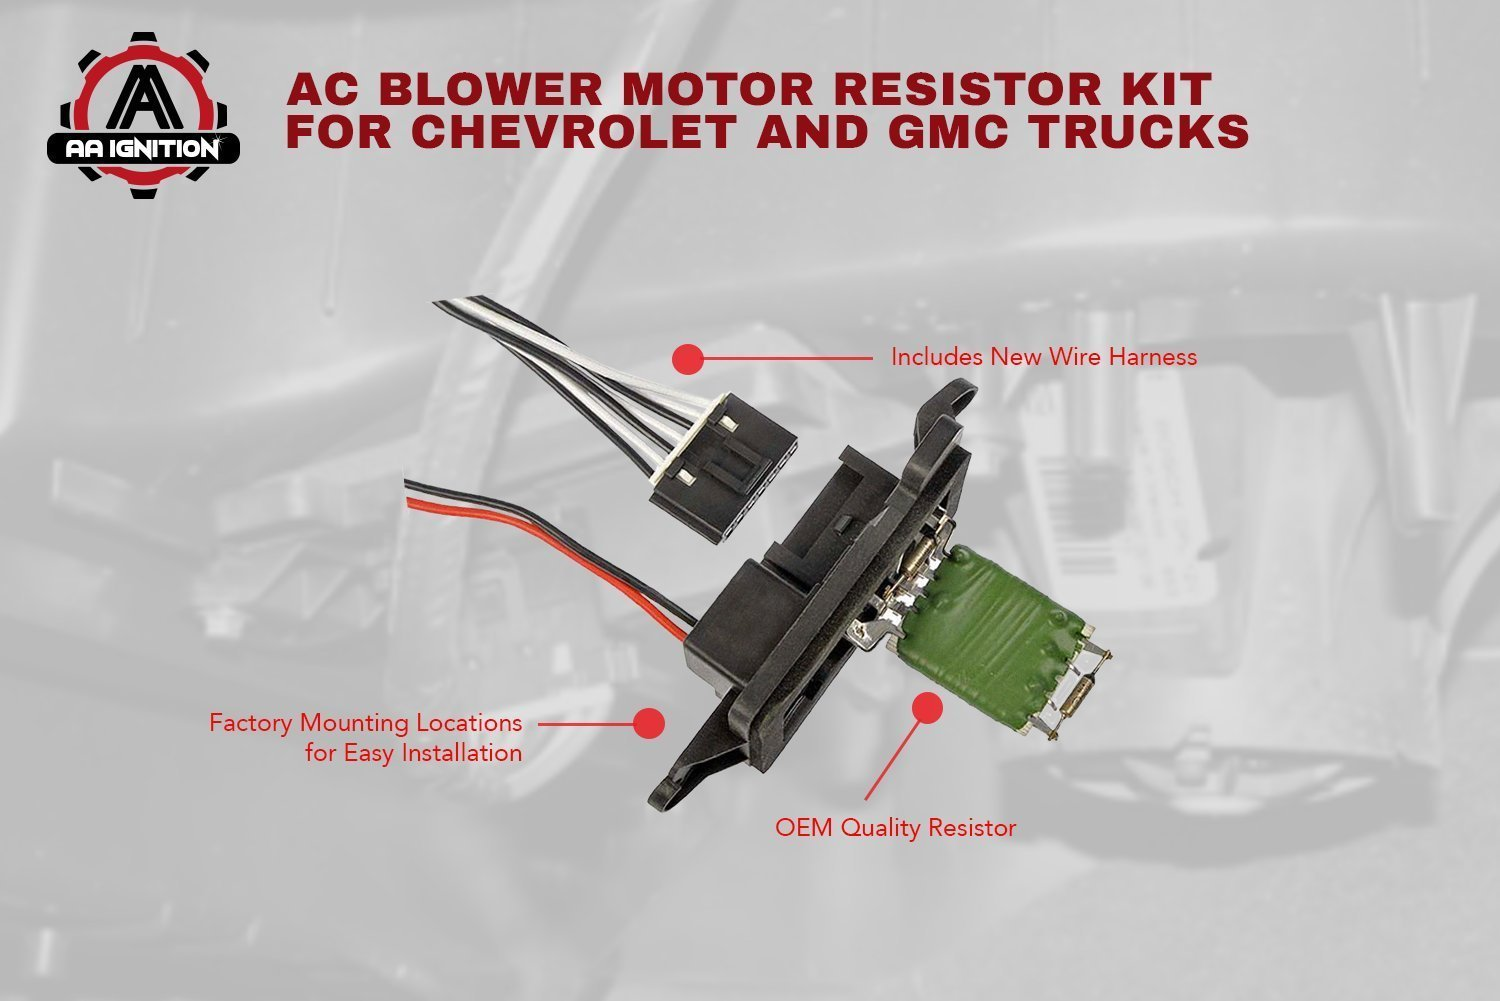 Ac Blower Motor Resistor Kit With Harness Replaces 89019088 973 Wiring To 405 15 81086 22807123 Fits Chevy Silverado Tahoe Suburban Avalanche Gmc Sierra